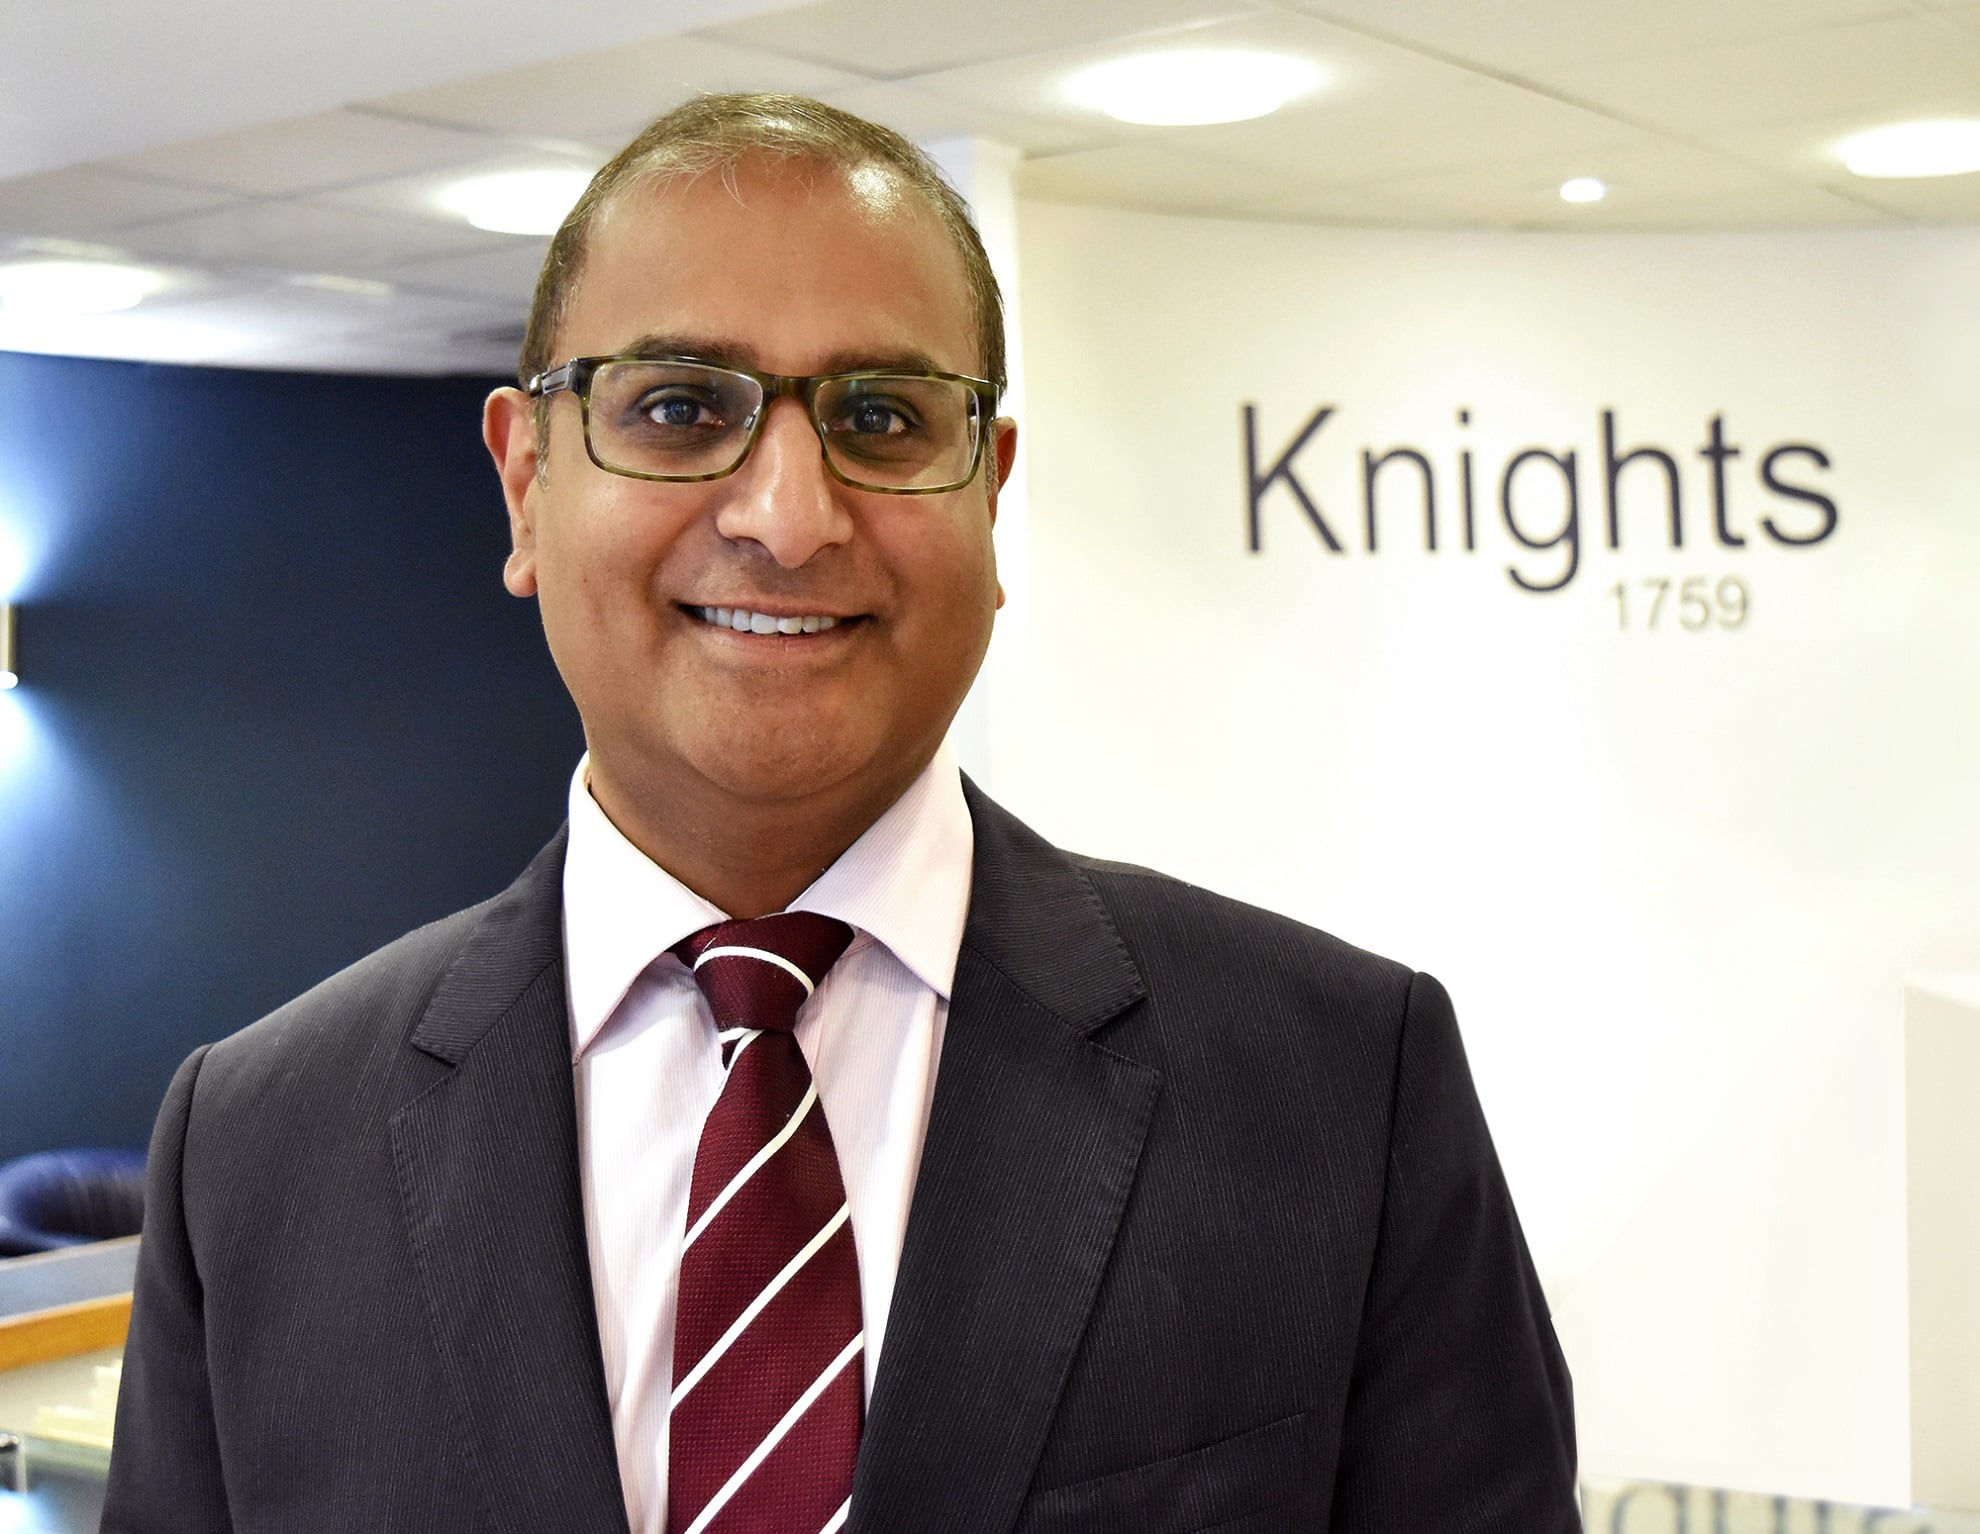 Gurmeet Jakhu joins Knights Professional Services and brings over 15 years' experience with him